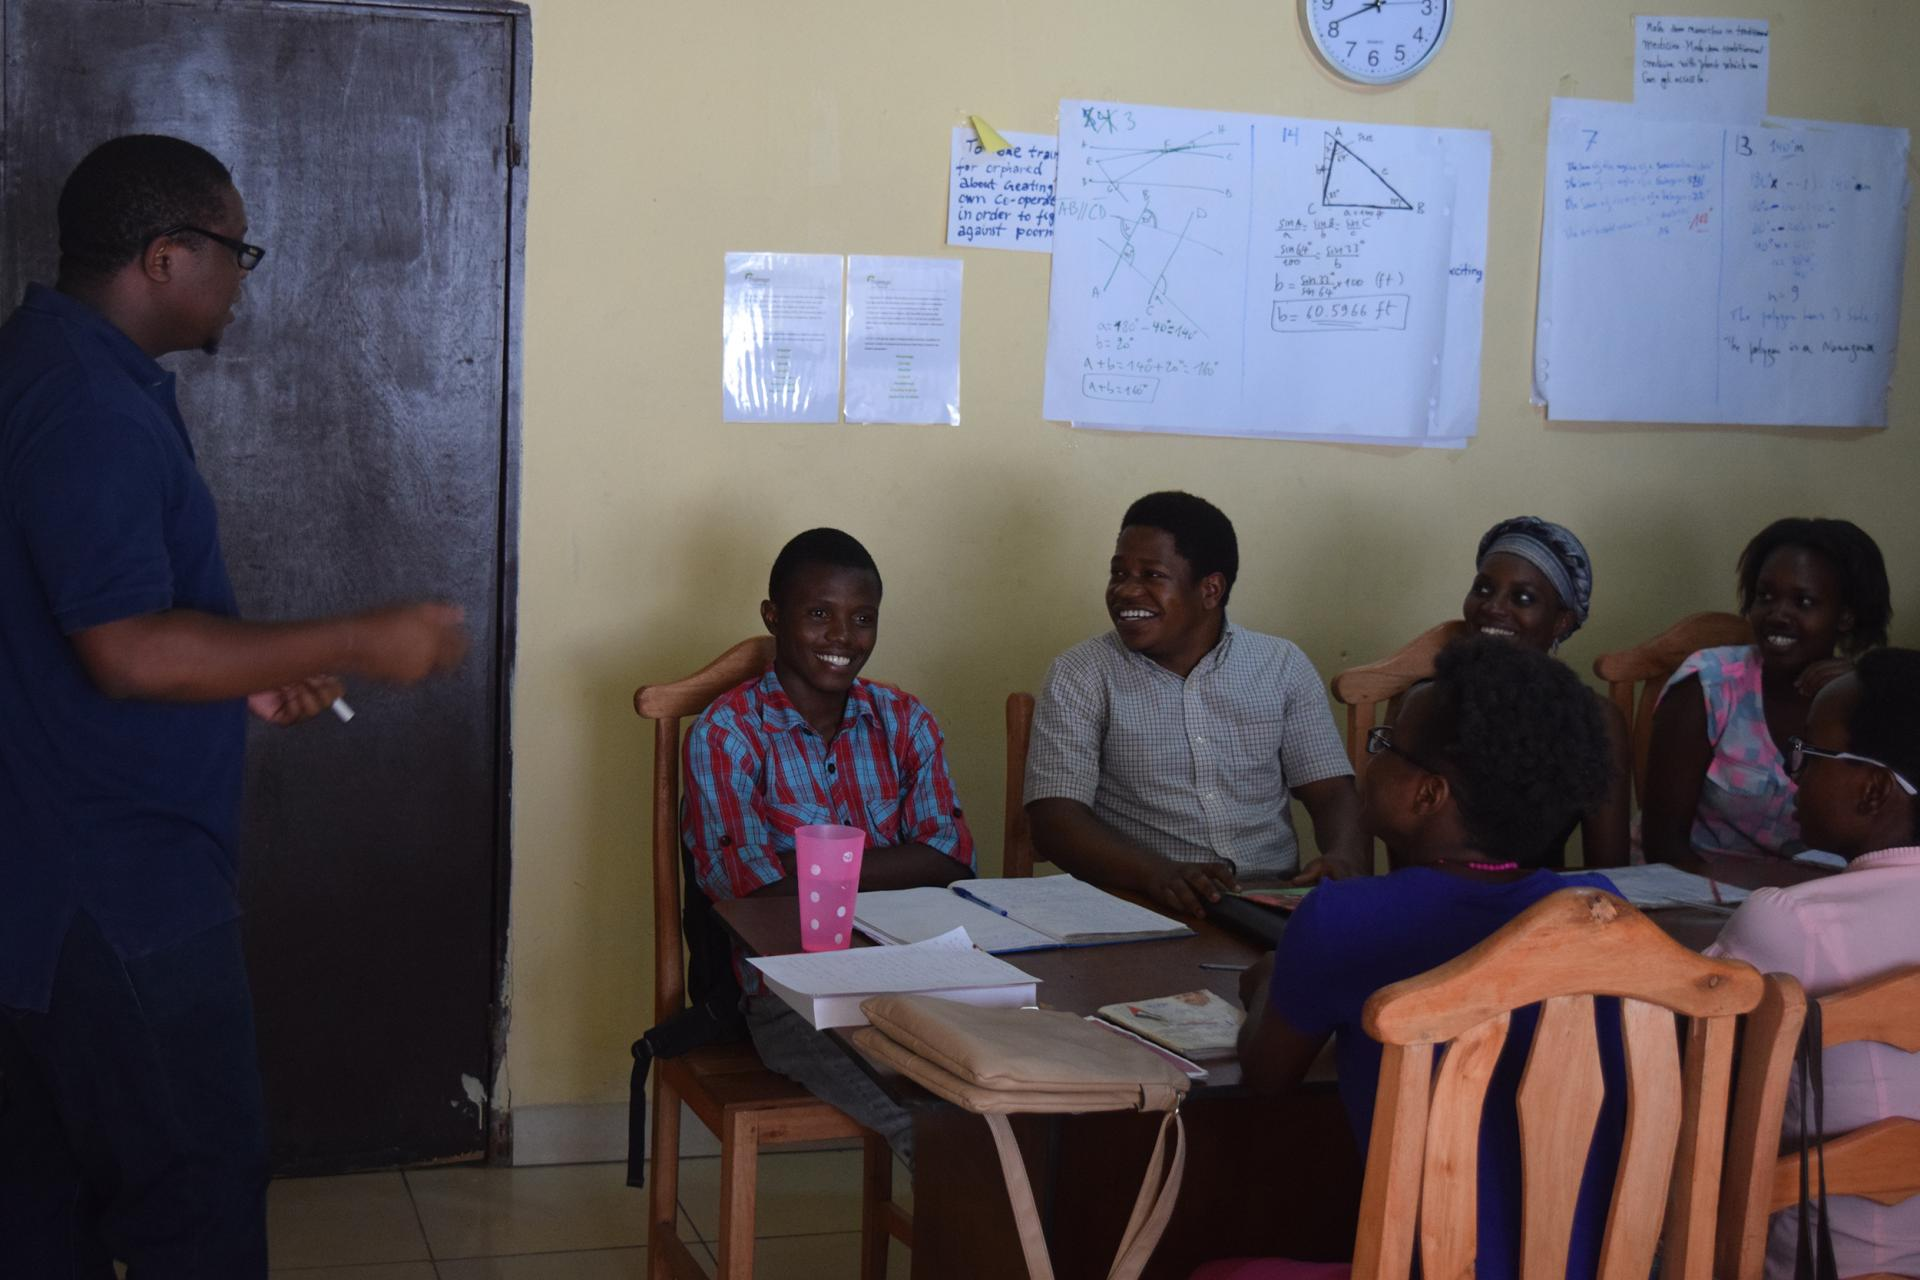 Gates Cambridge Scholar Etienne Mashuli teaching his students in the Tujenge Scholars Programme.